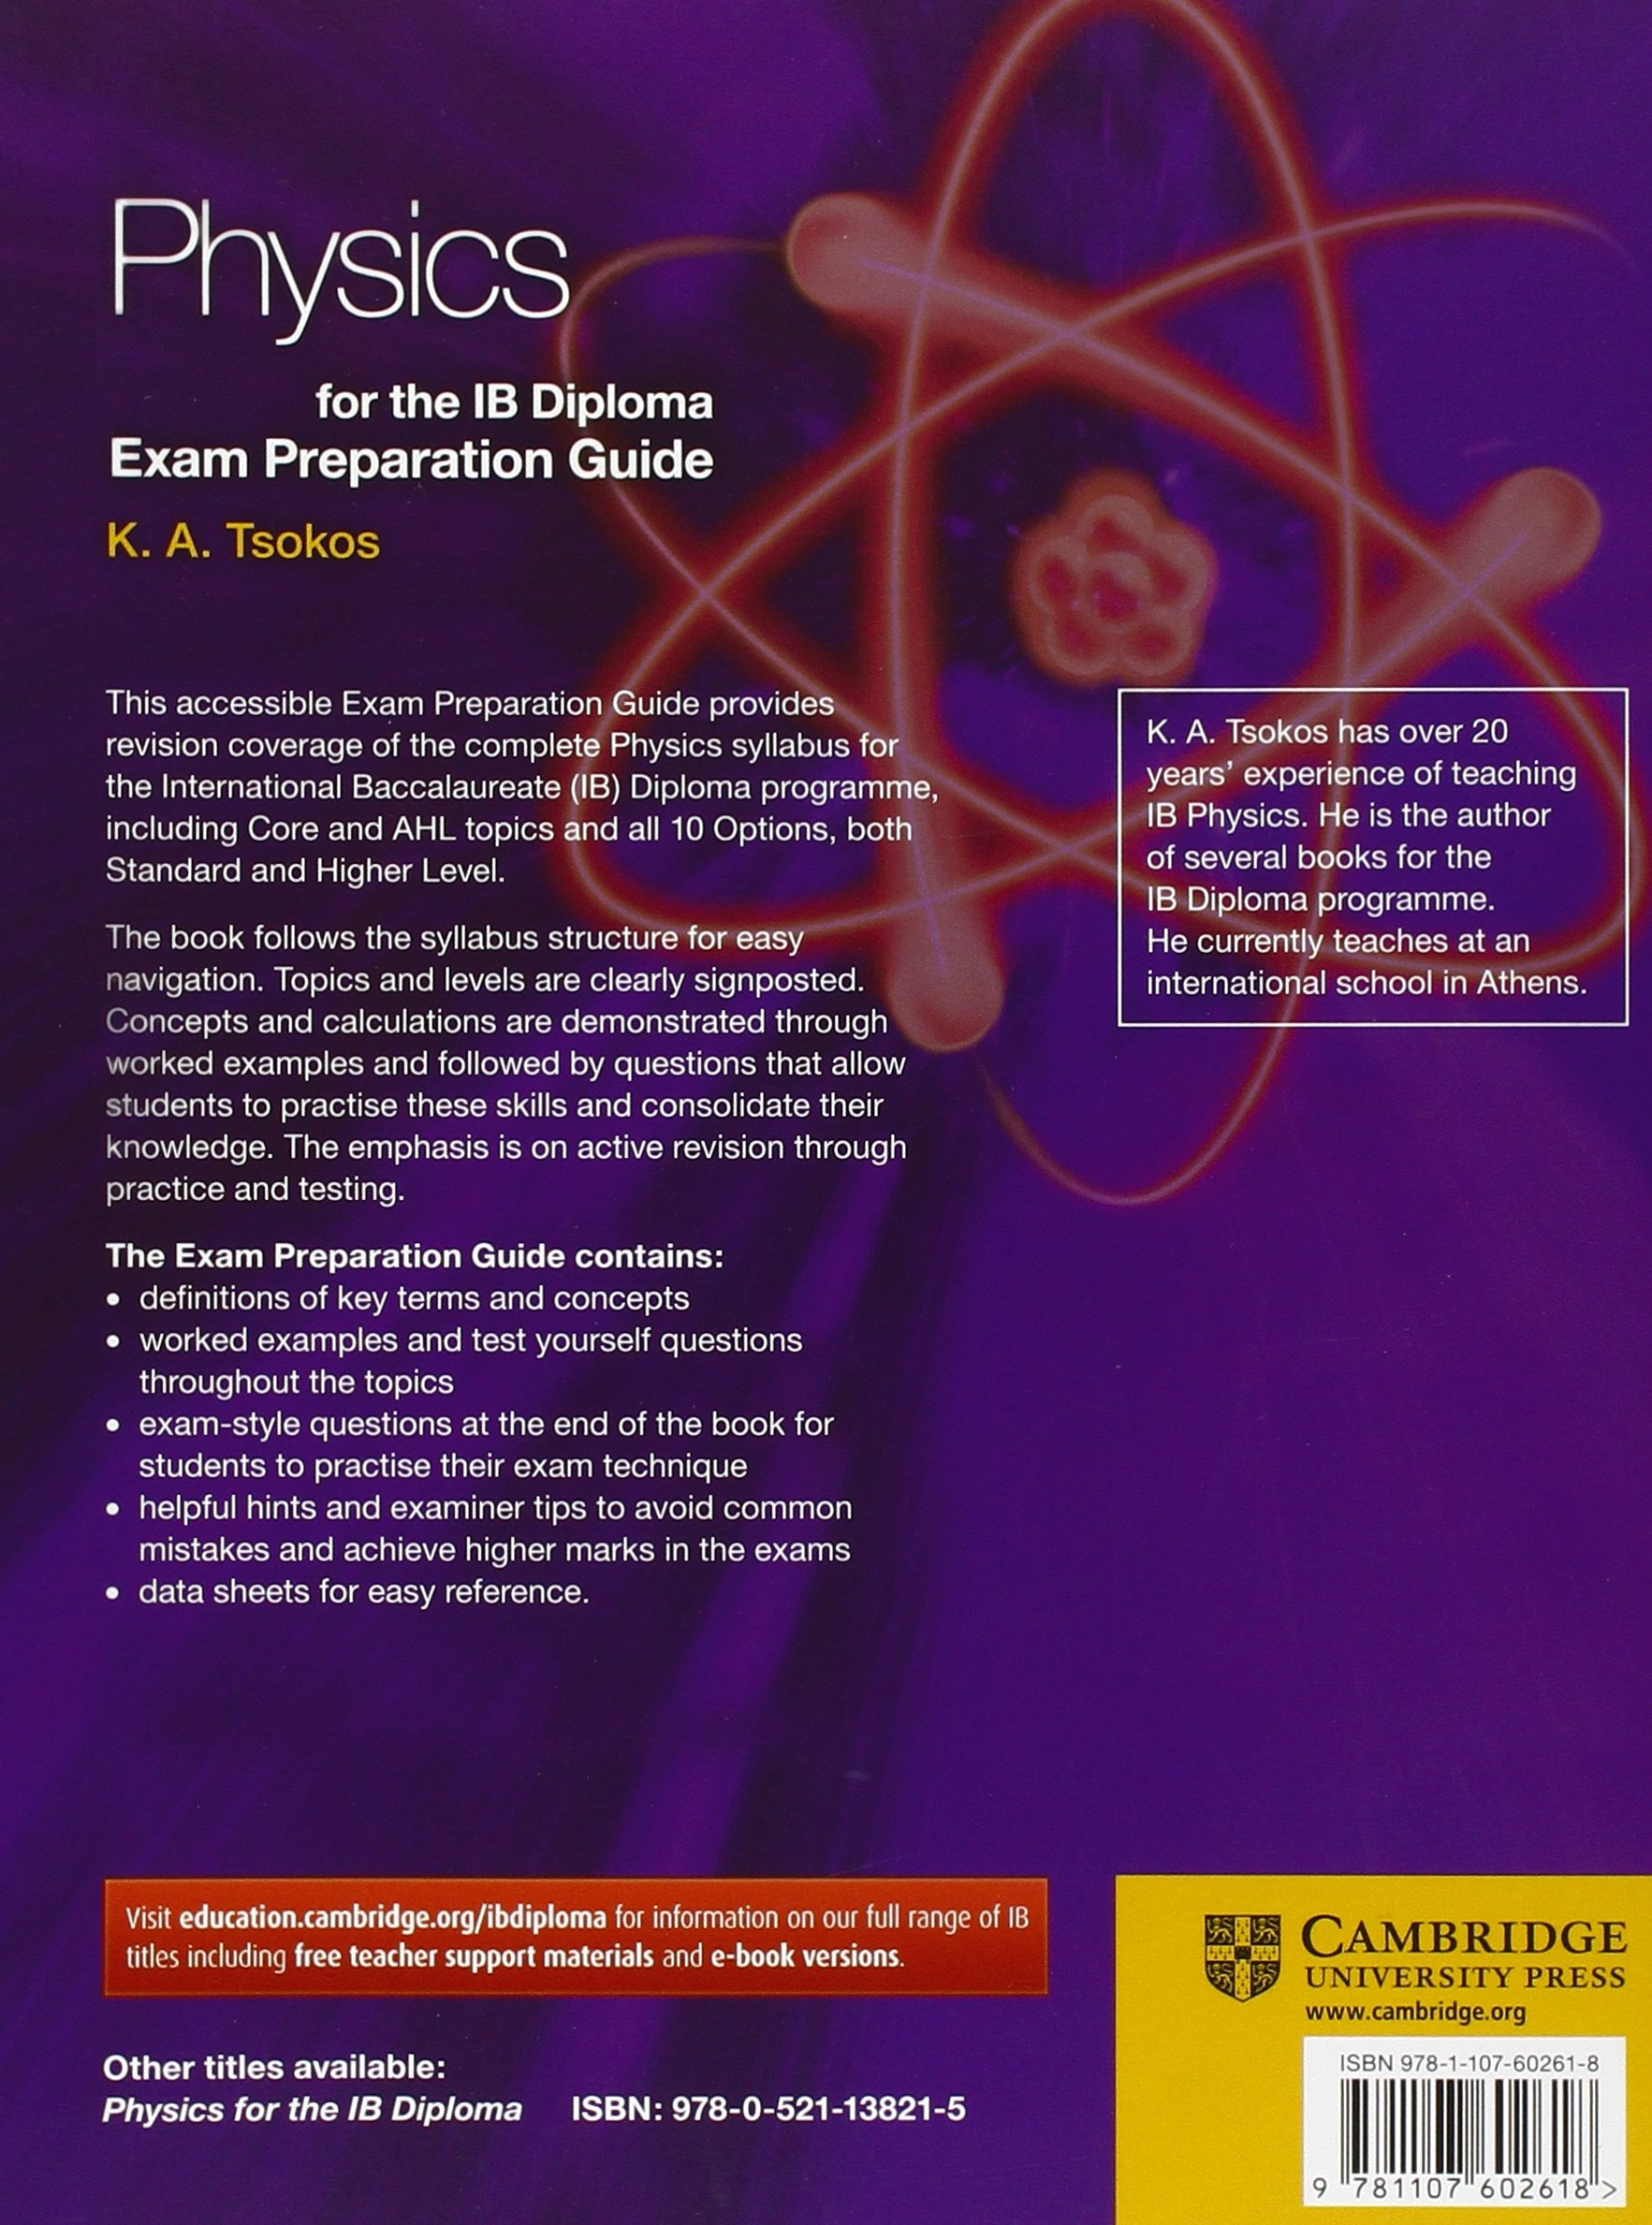 Physics for the ib diploma exam preparation guide (ebook).